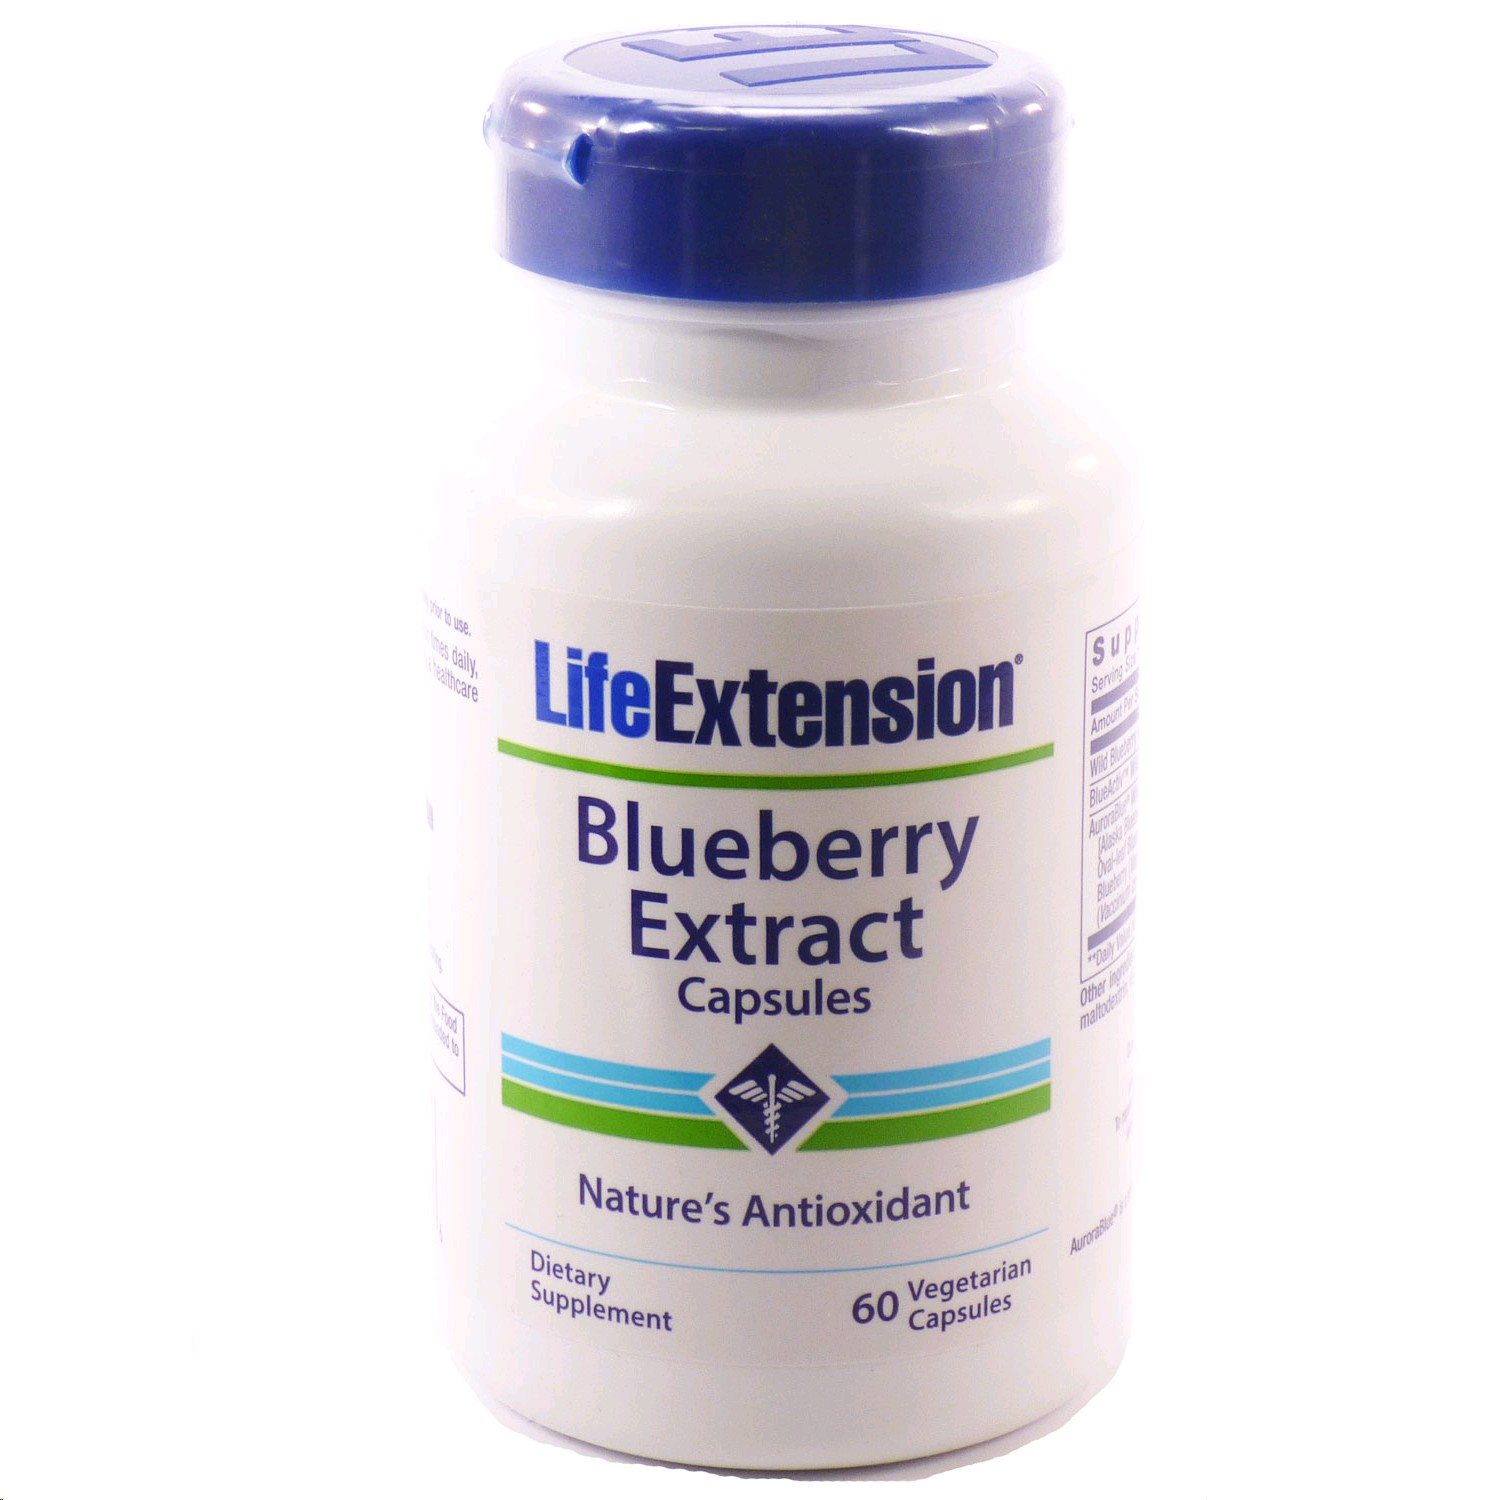 LIFE EXTENSION BLUEBERRY EXTRACT 60 CAPSULES